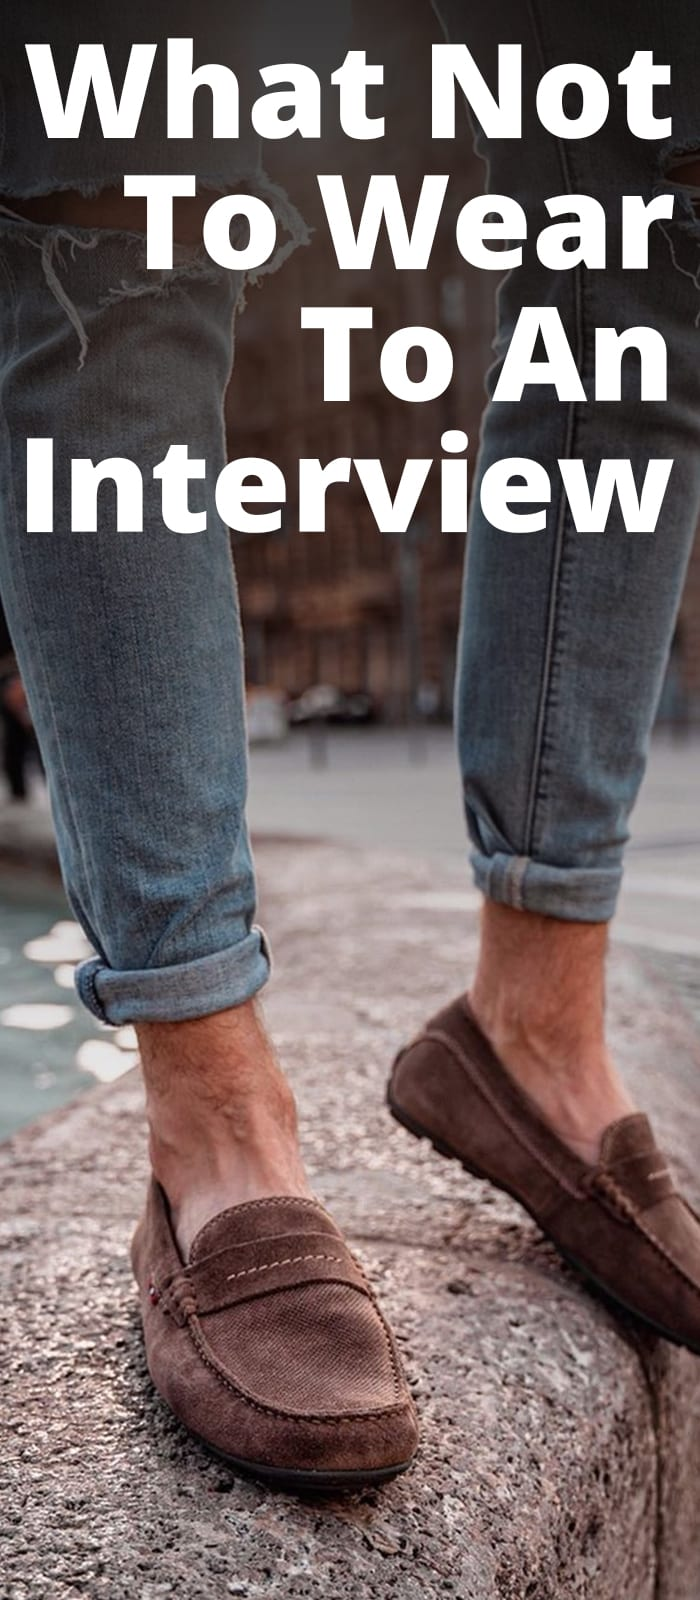 10 Things to Avoid Wearing to an Interview